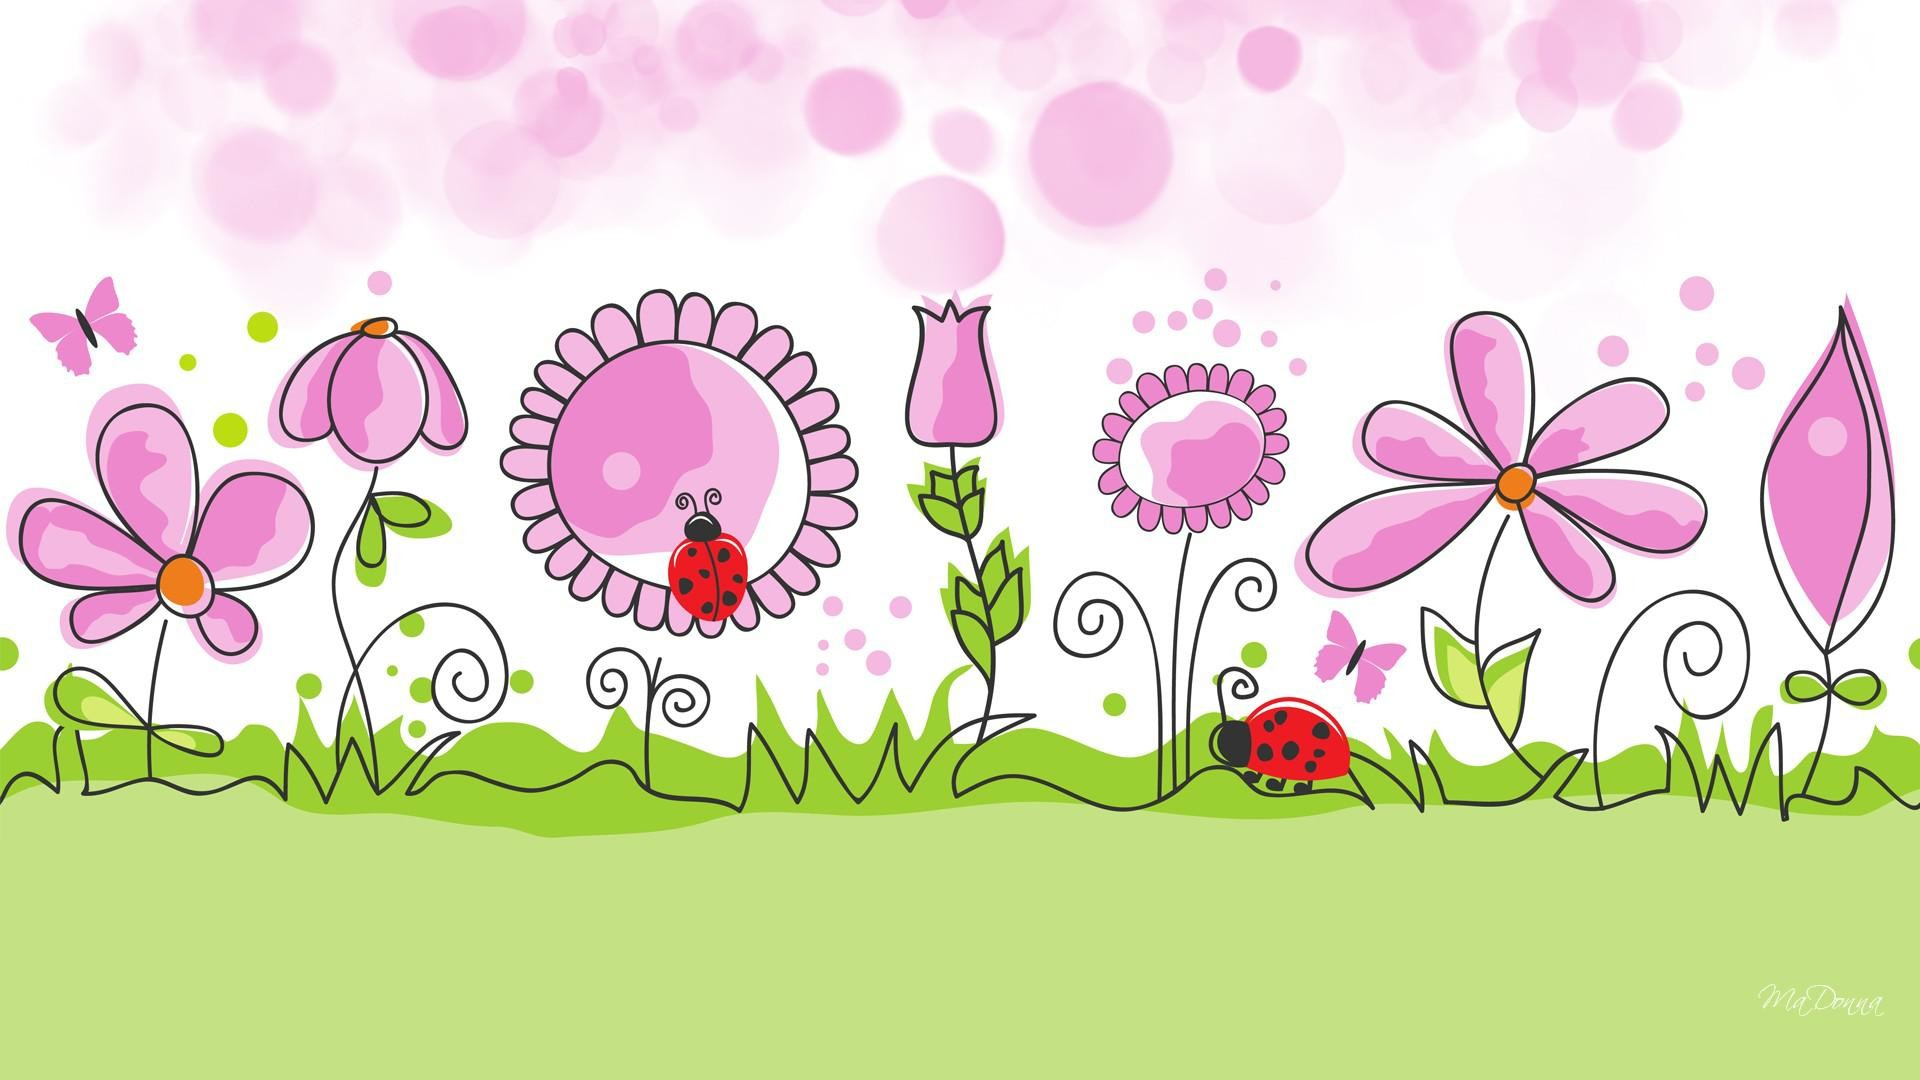 Cute Spring 1920x1080 Desktop Wallpapers (55+ images)